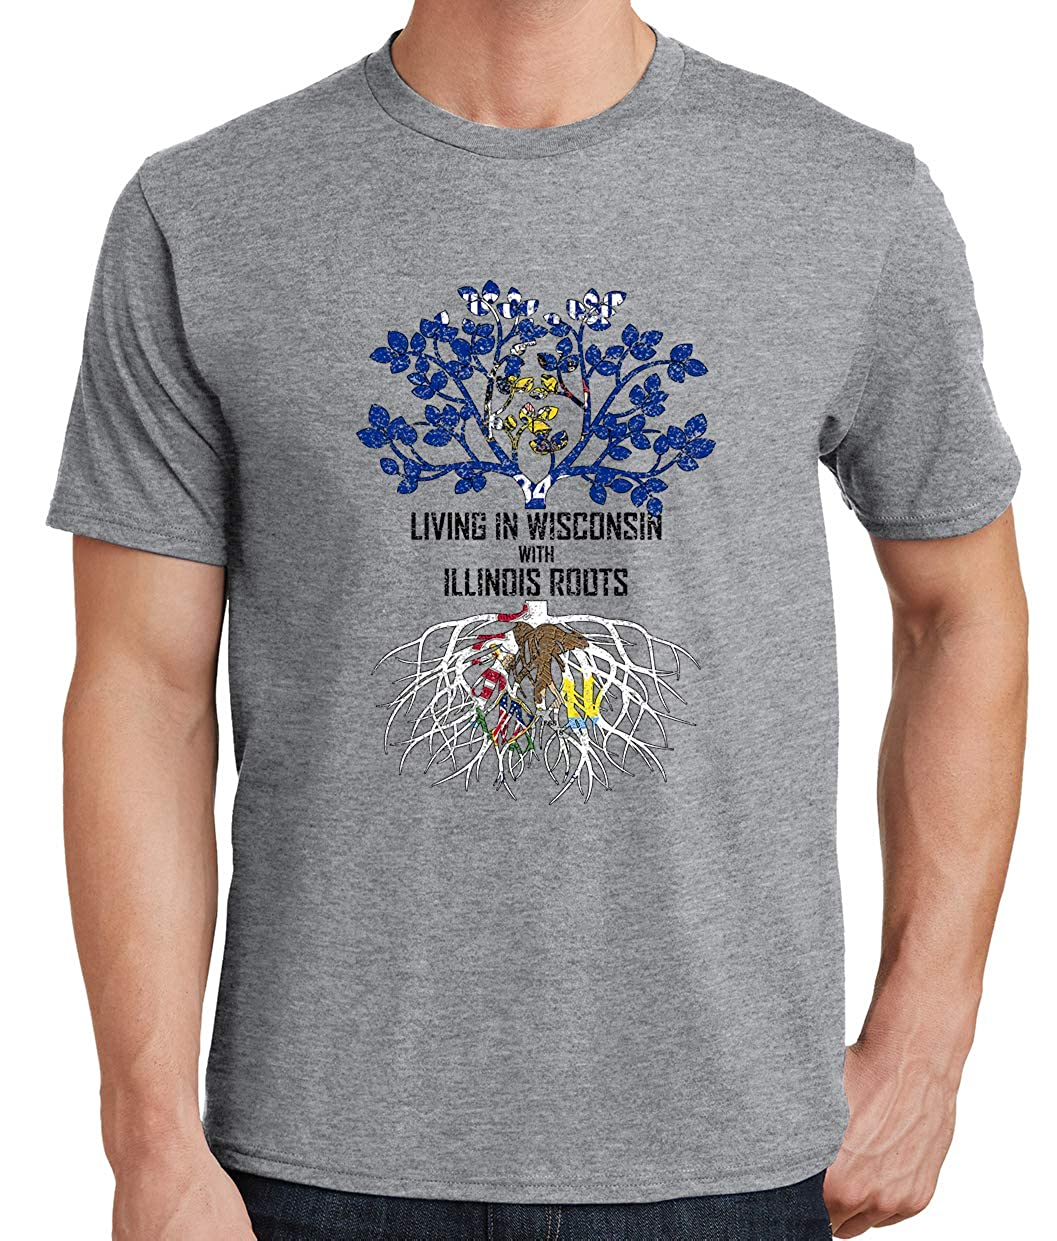 Tenacitee Mens Living in Wisconsin Illinois Roots T-Shirt